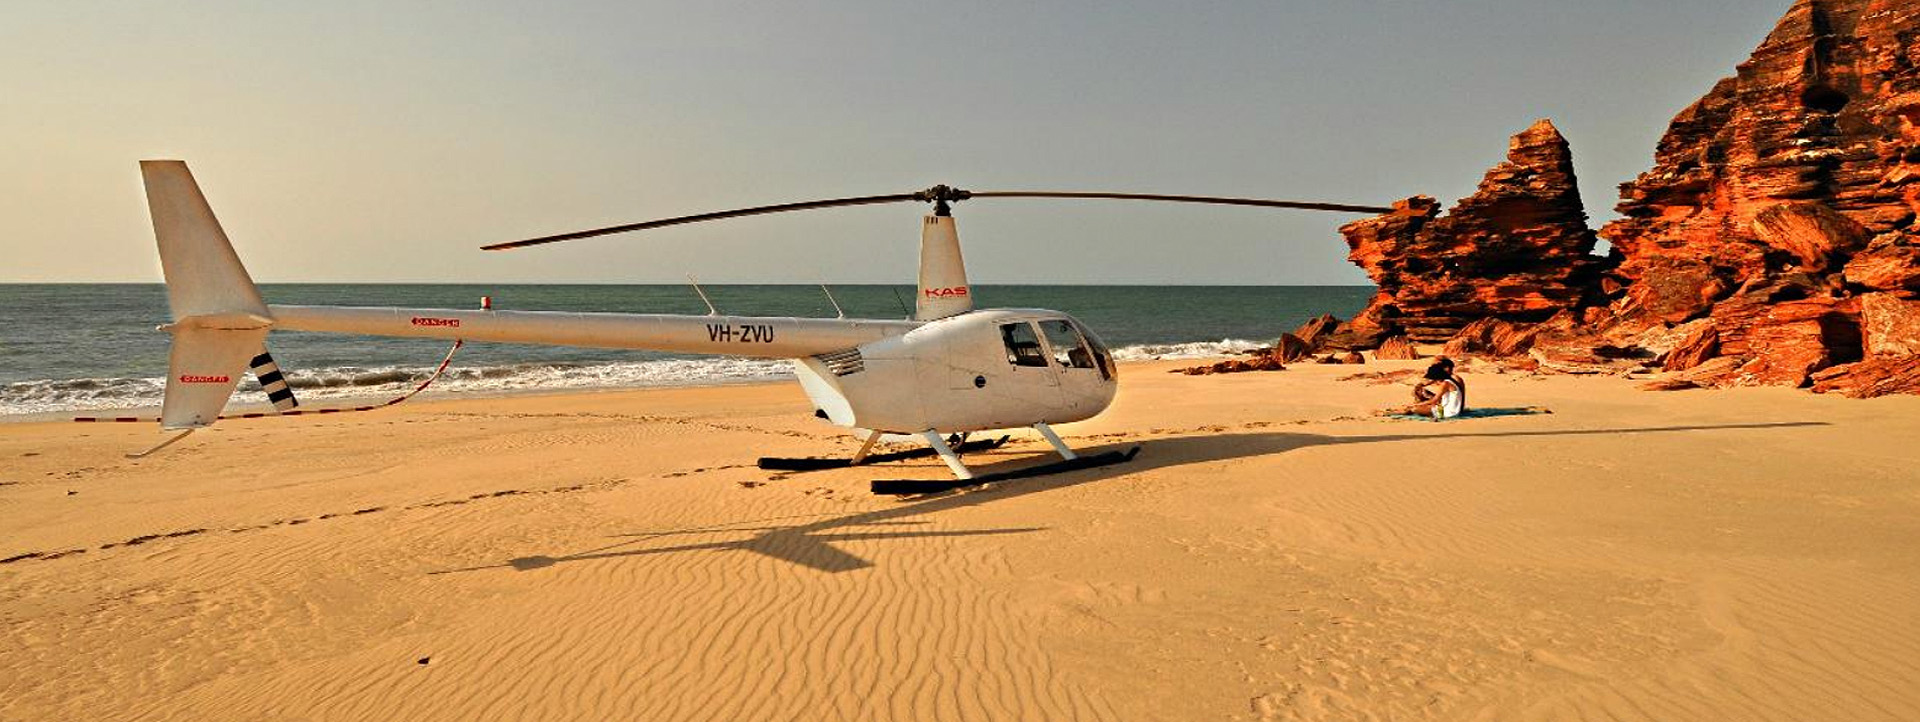 ROMANTIC HELICOPTER PICNIC on the beach Broome